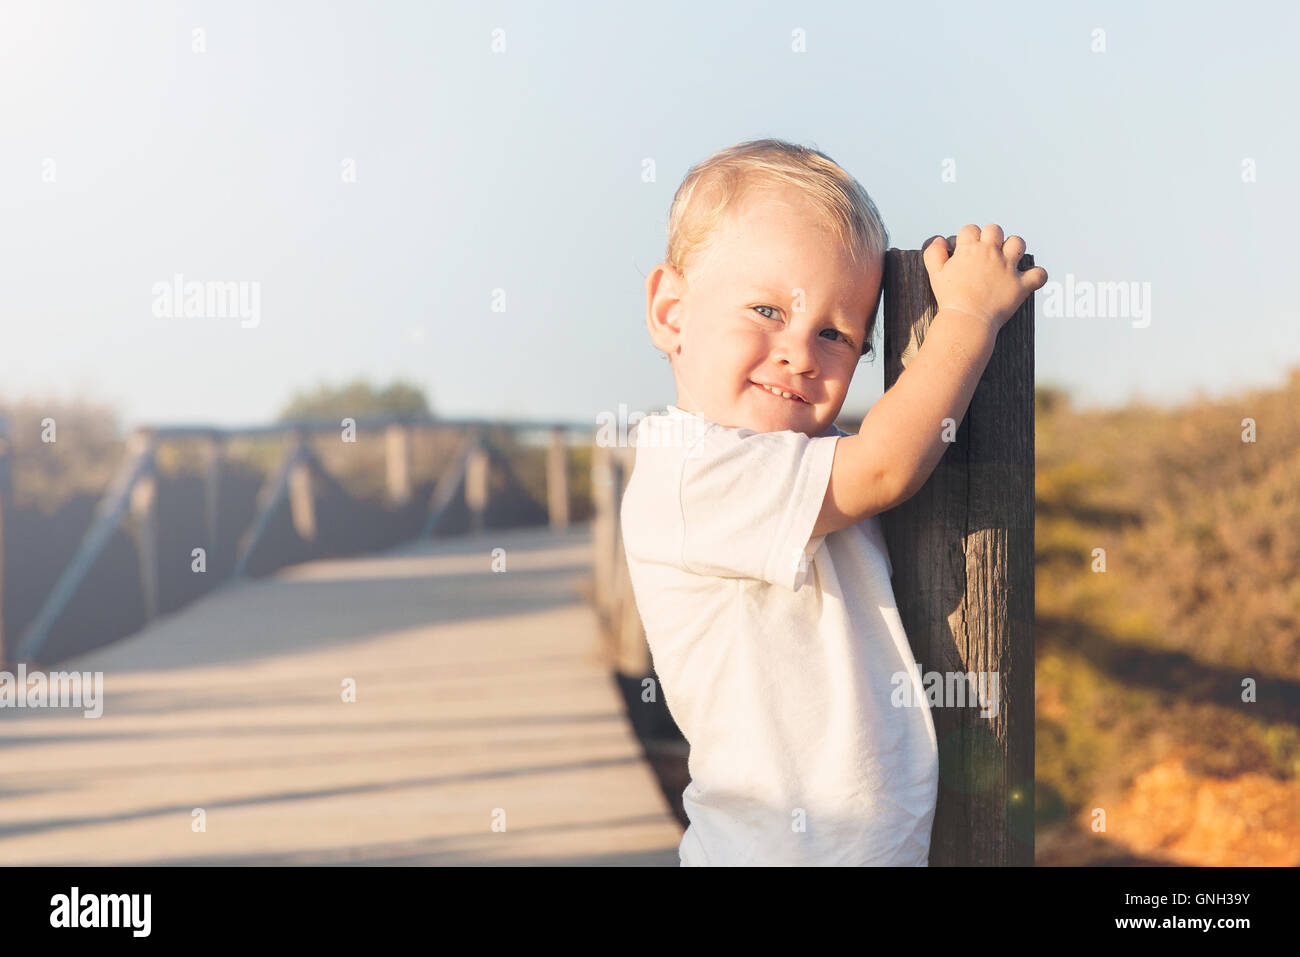 Portrait of a smiling boy on beach - Stock Image